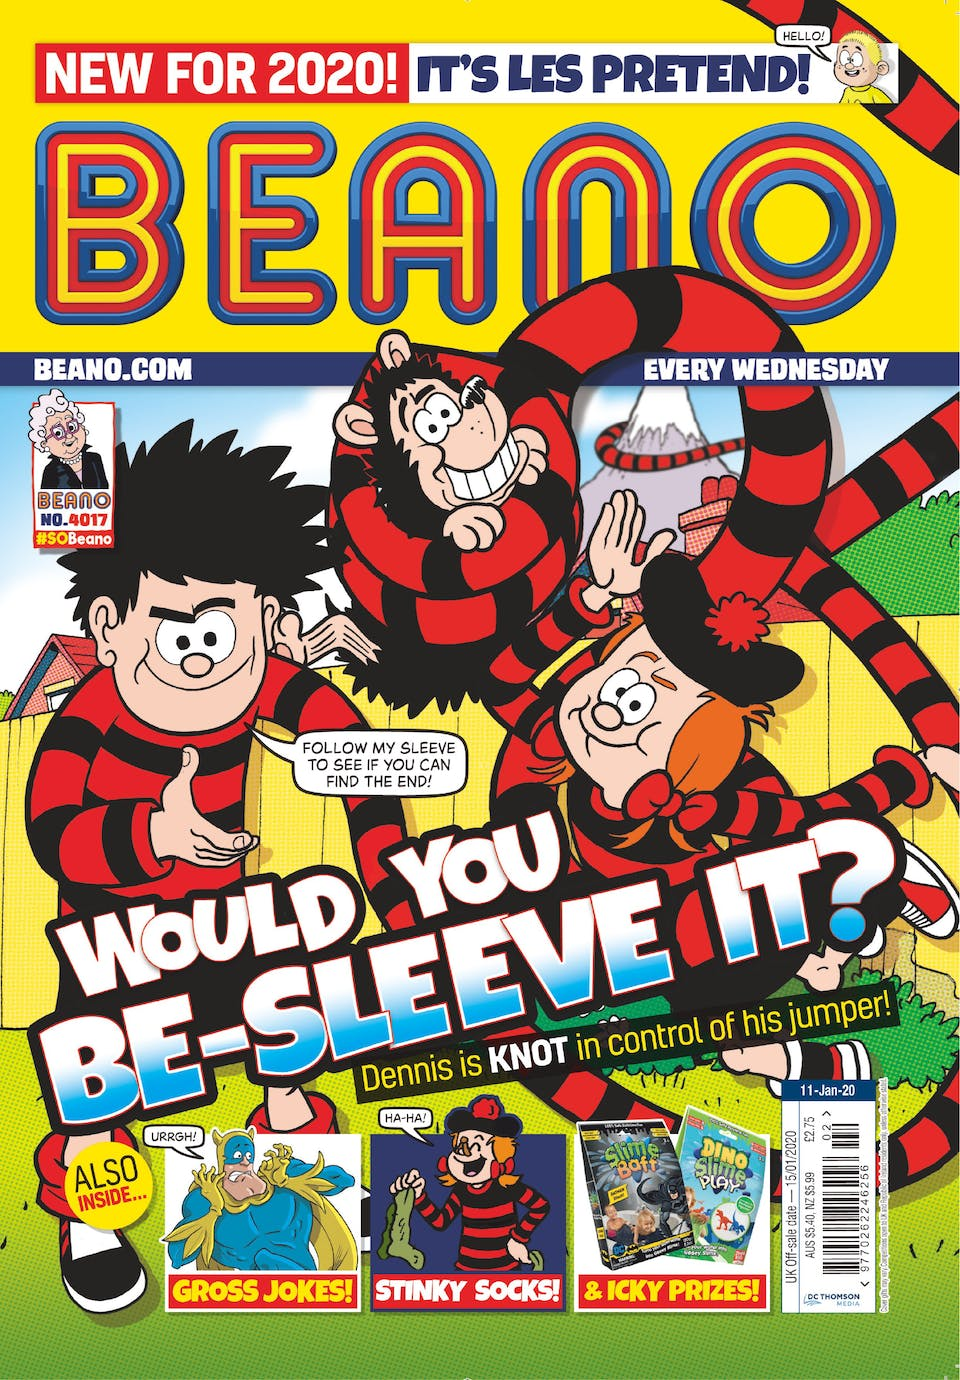 Inside Beano 4017 - Would you be-sleeve it?